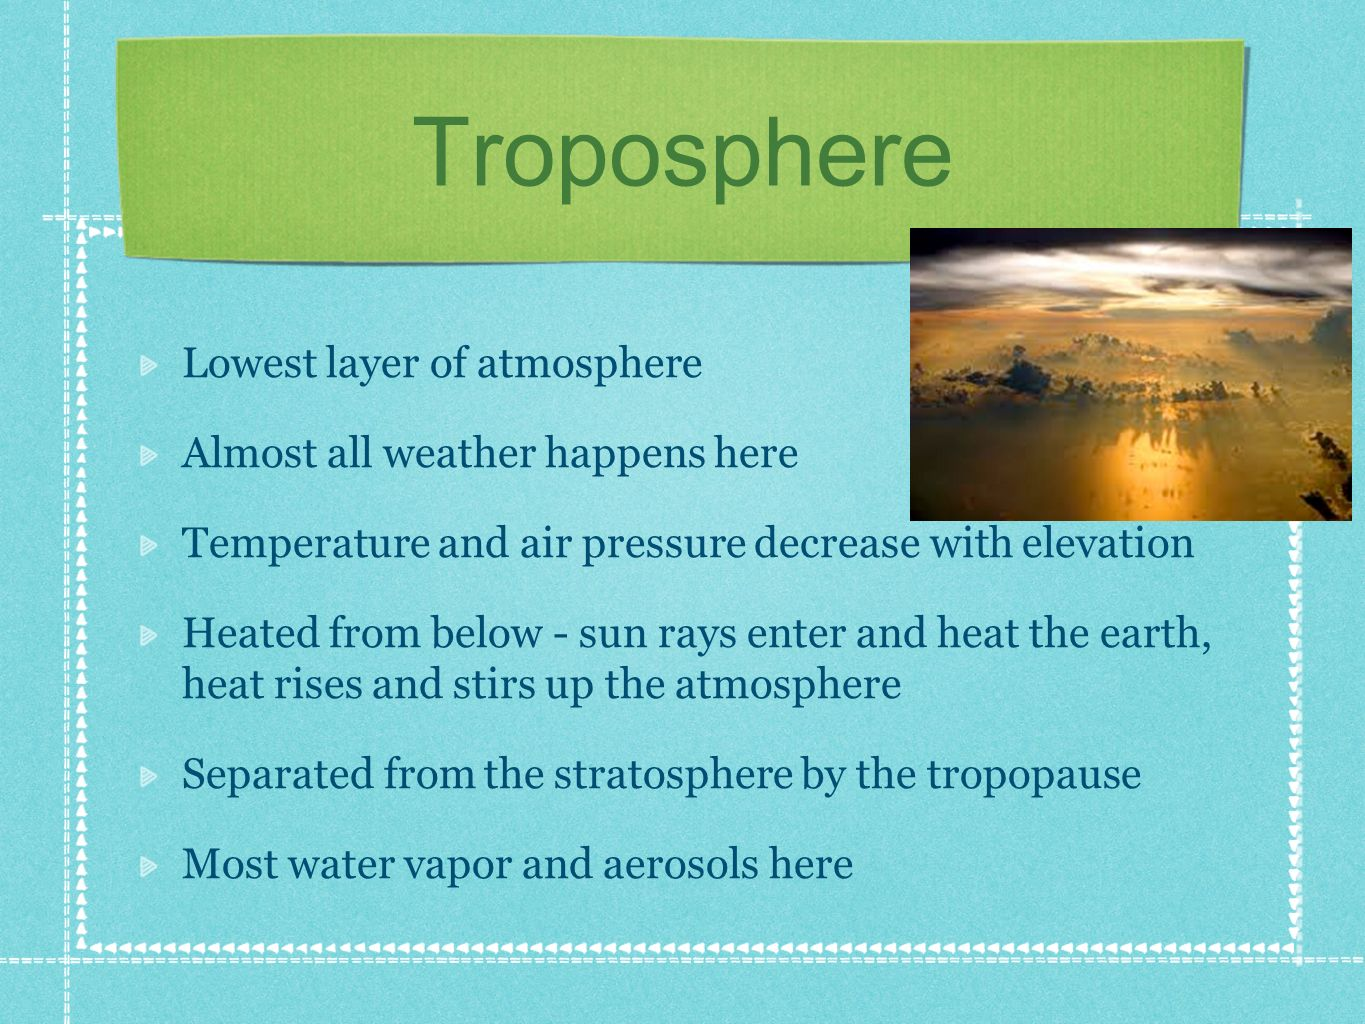 The Atmosphere Layers Whats The Atmosphere Made Of Nitrogen - What's the elevation here